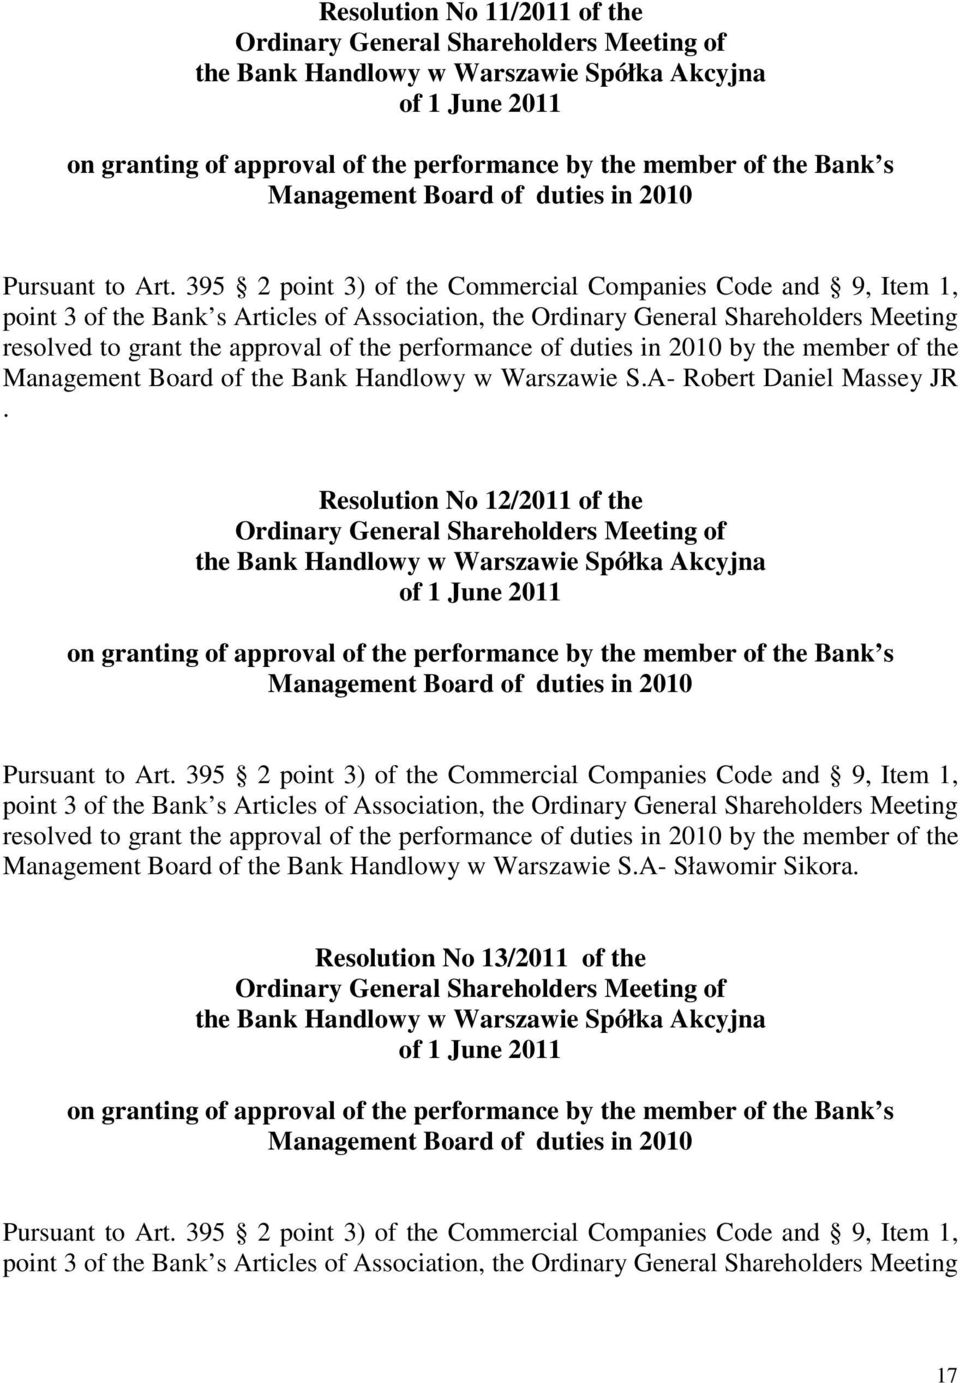 Resolution No 12/2011 of the of the Bank Handlowy w Warszawie Spółka Akcyjna Management Board of duties in 2010 resolved to grant the approval of the performance of